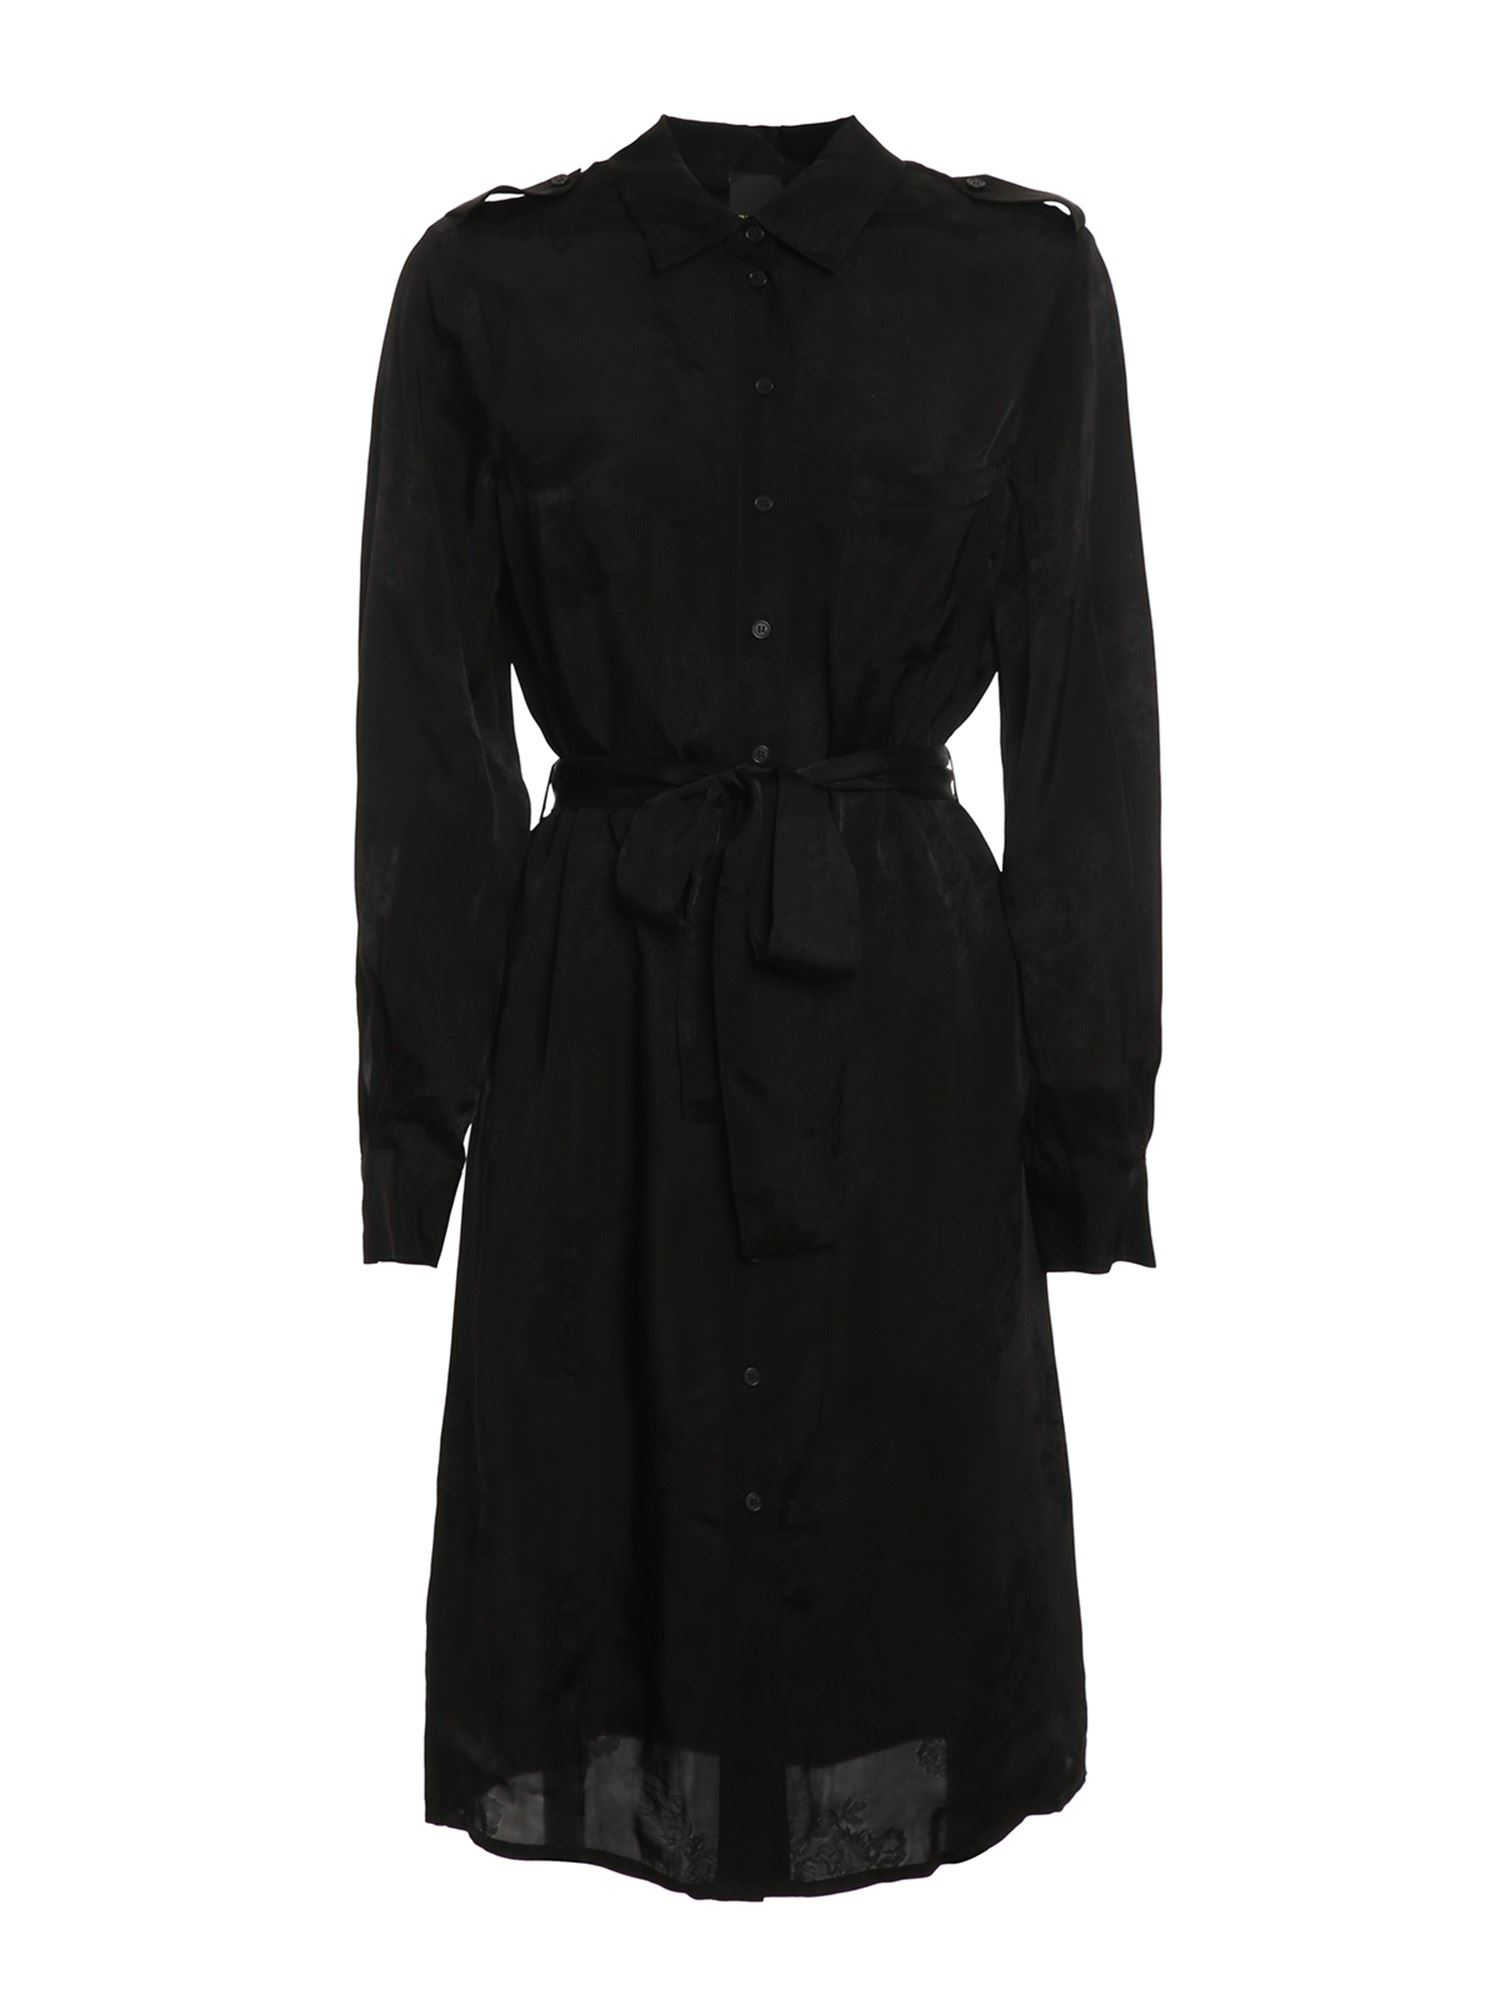 Pinko Dresses PINKO ALICIA SHIRT DRESS IN BLACK